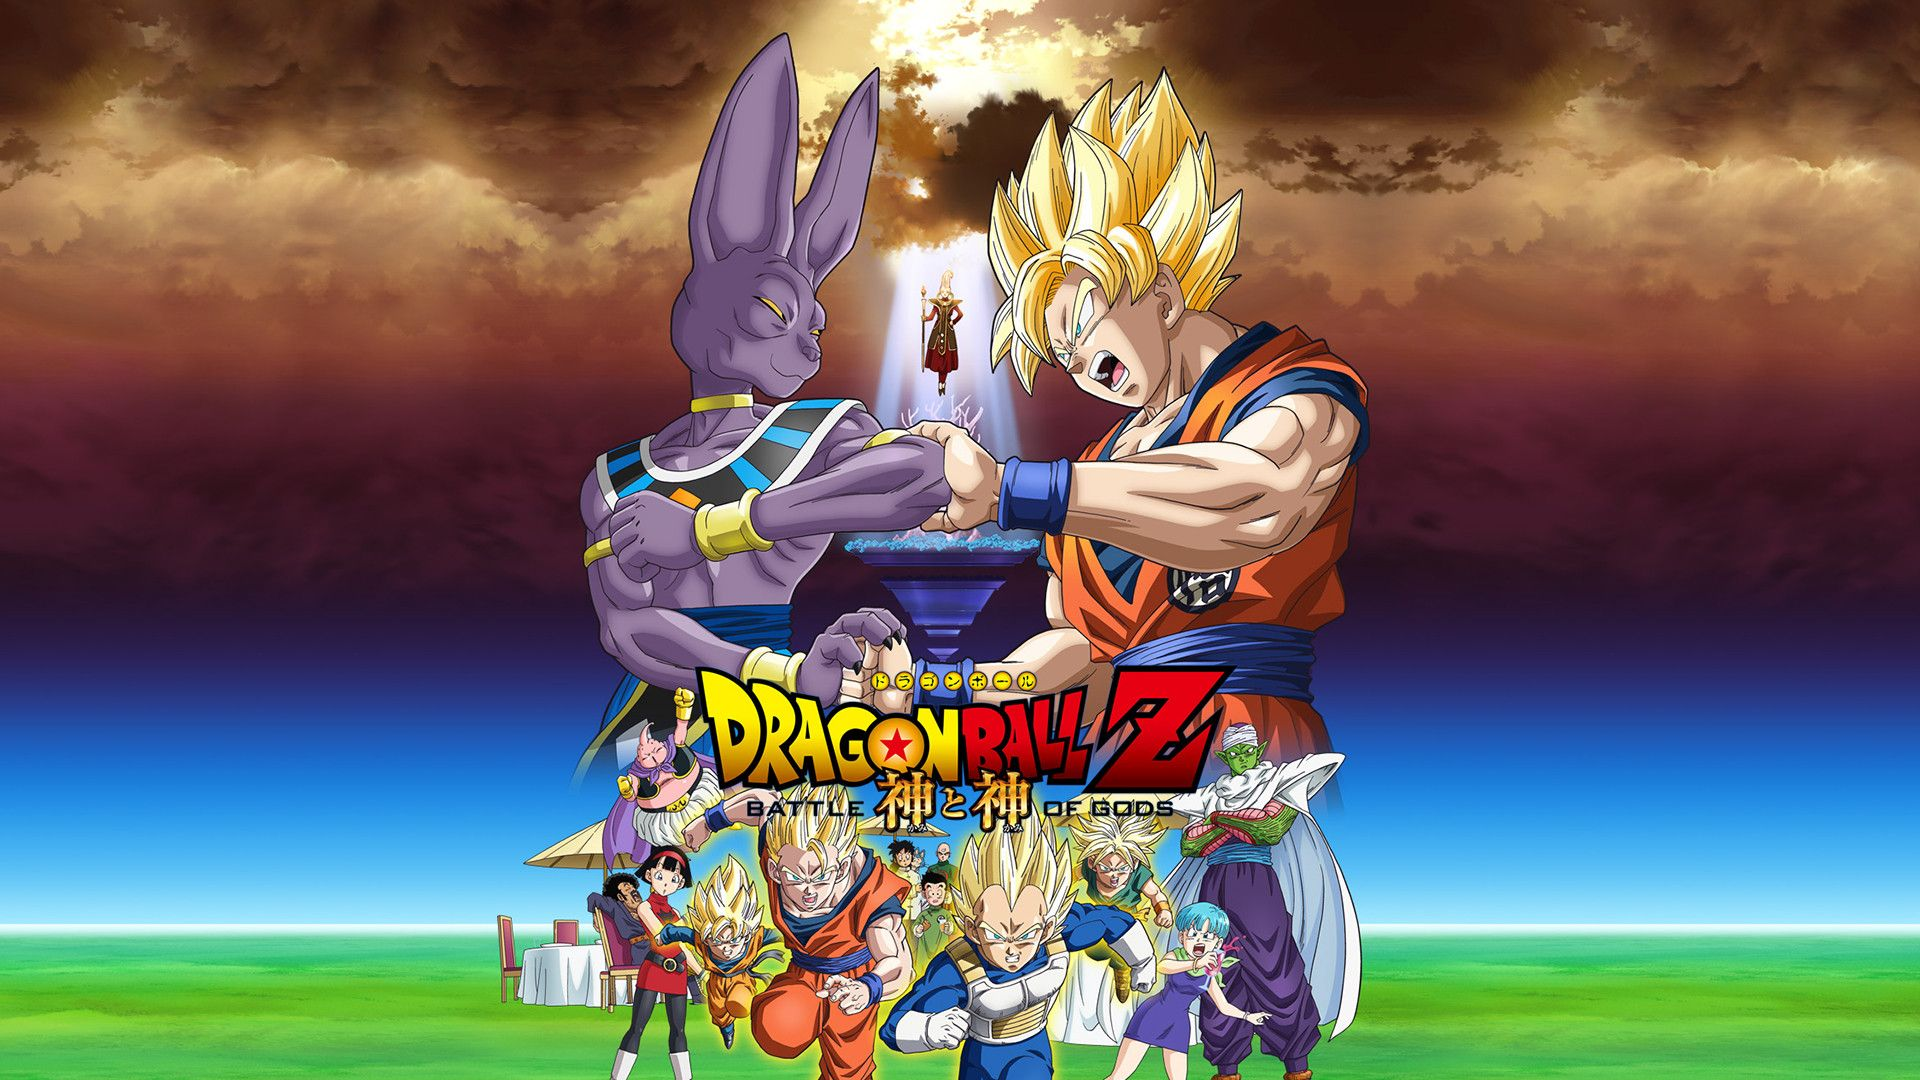 Dbz Tablet Wallpapers Top Free Dbz Tablet Backgrounds